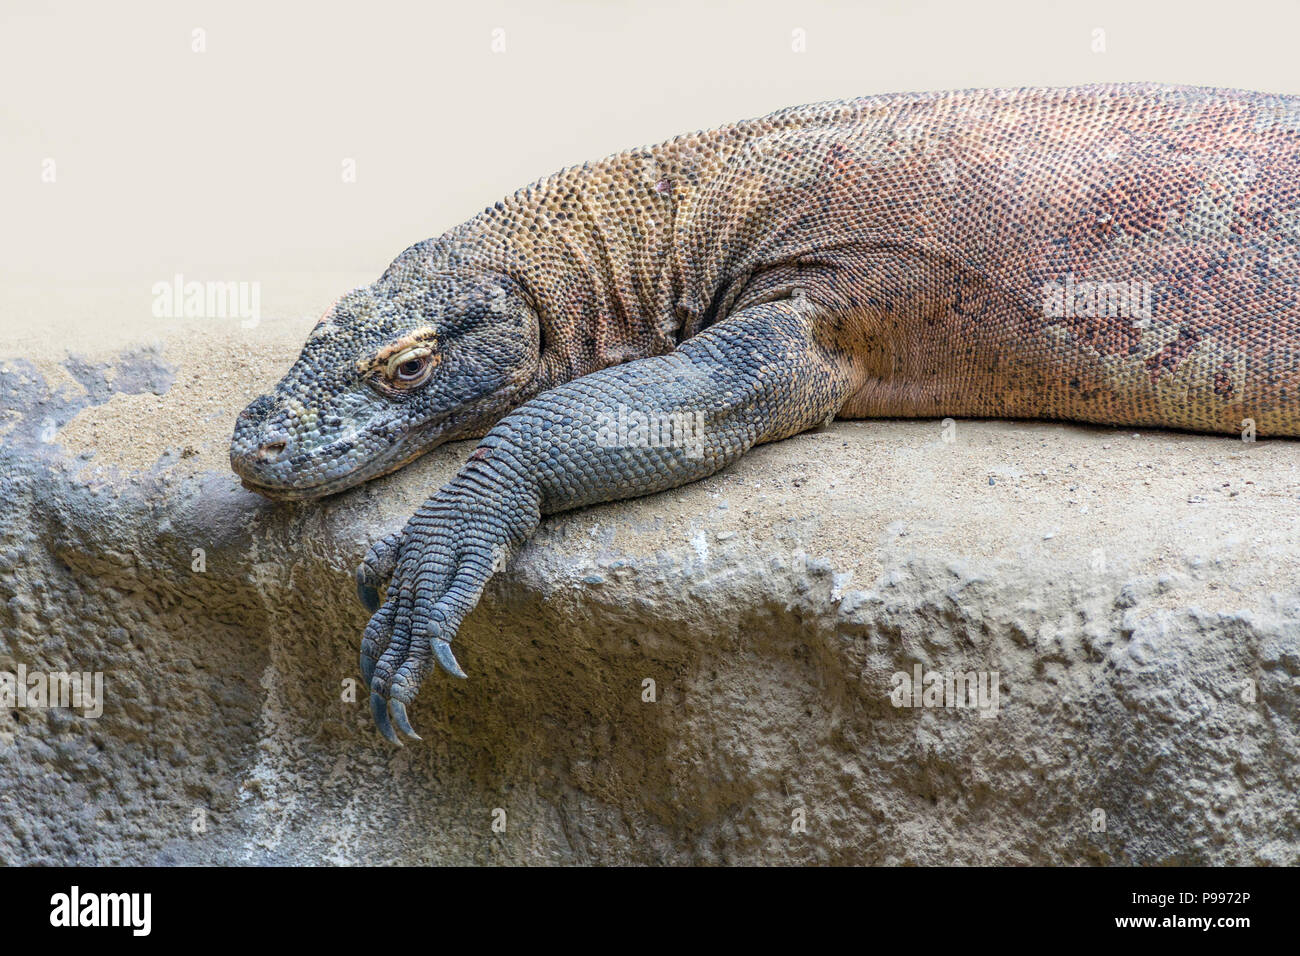 Komodo dragon resting on a rock formation - Stock Image